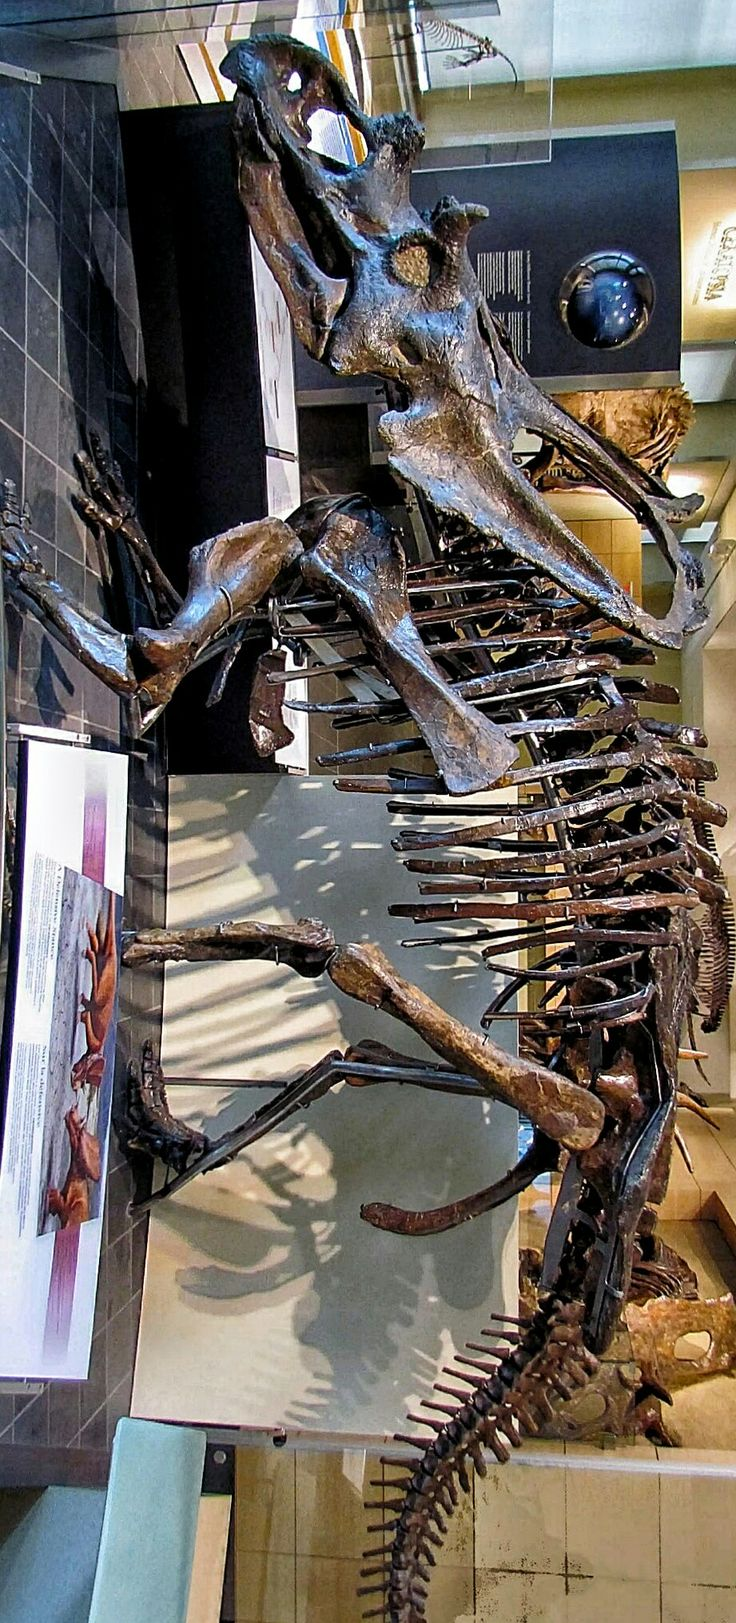 Green tea and velociraptors it s just a flesh wound - Best 25 Genus Meaning Ideas That You Will Like On Pinterest Amuse Meaning Meaning Of Amuse And Spinosaurus